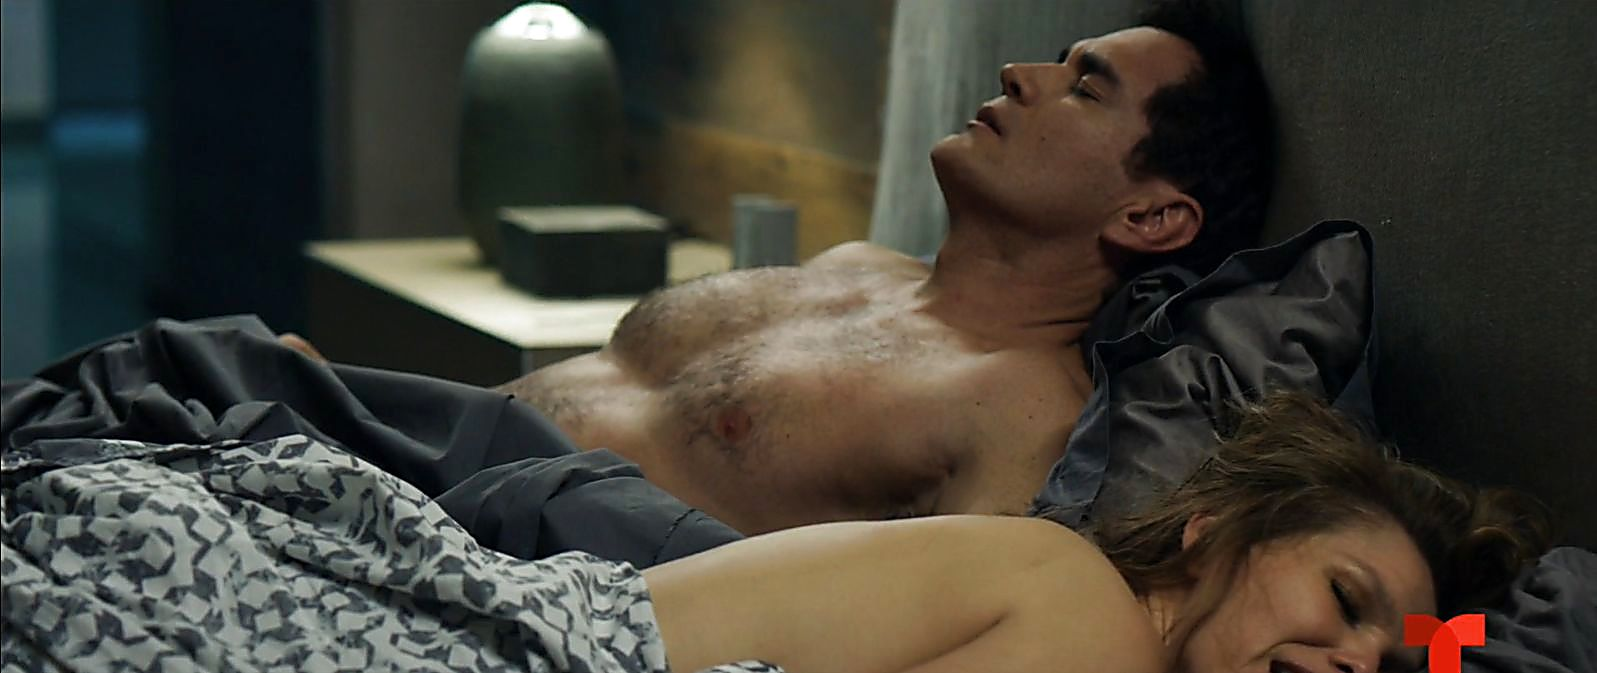 David Zepeda sexy shirtless scene April 1, 2020, 5am